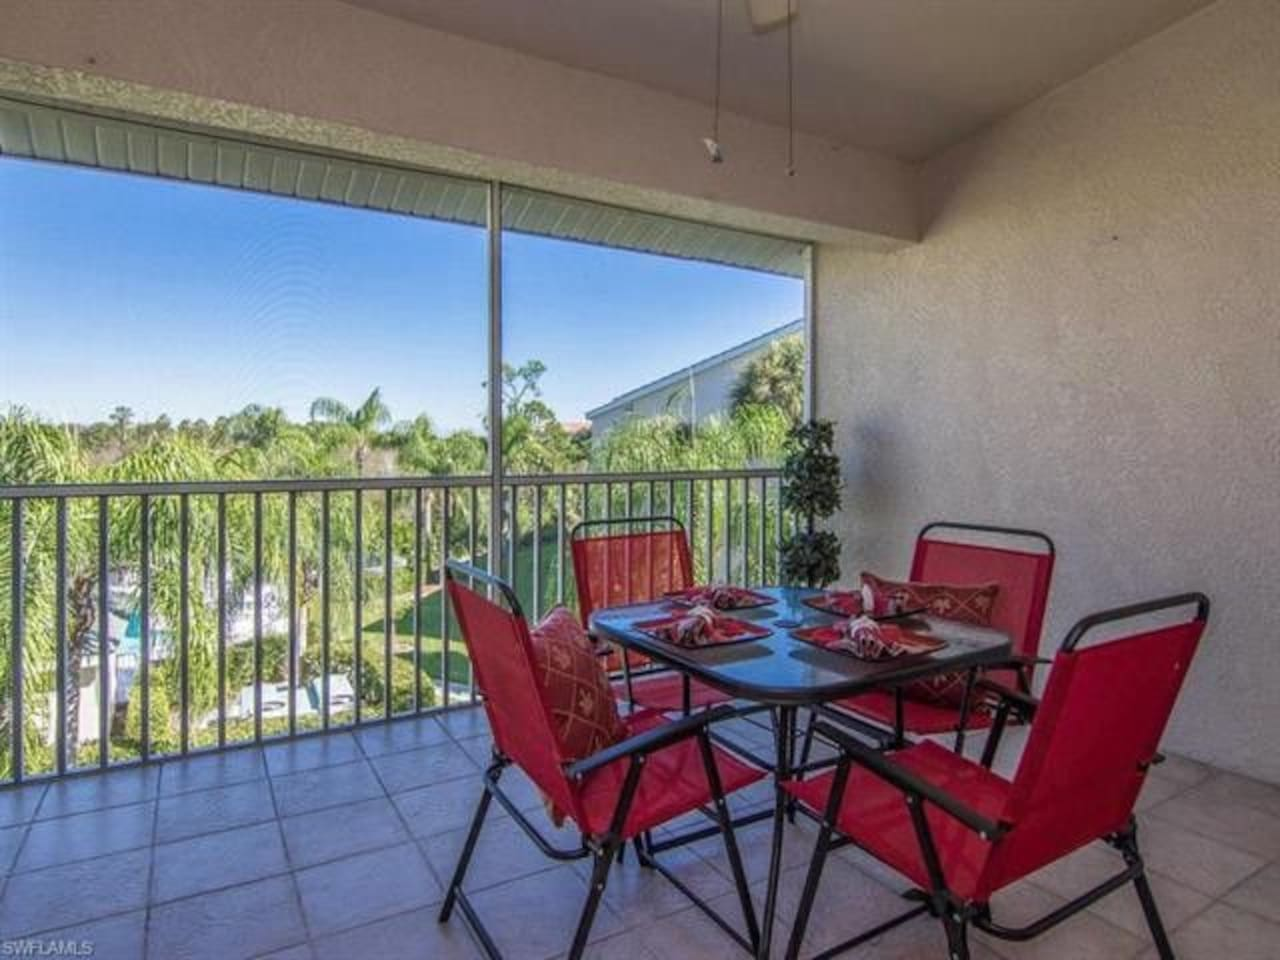 Penthouse view of pool and gardens from the spacious lanai. Enjoy alfresco dining.